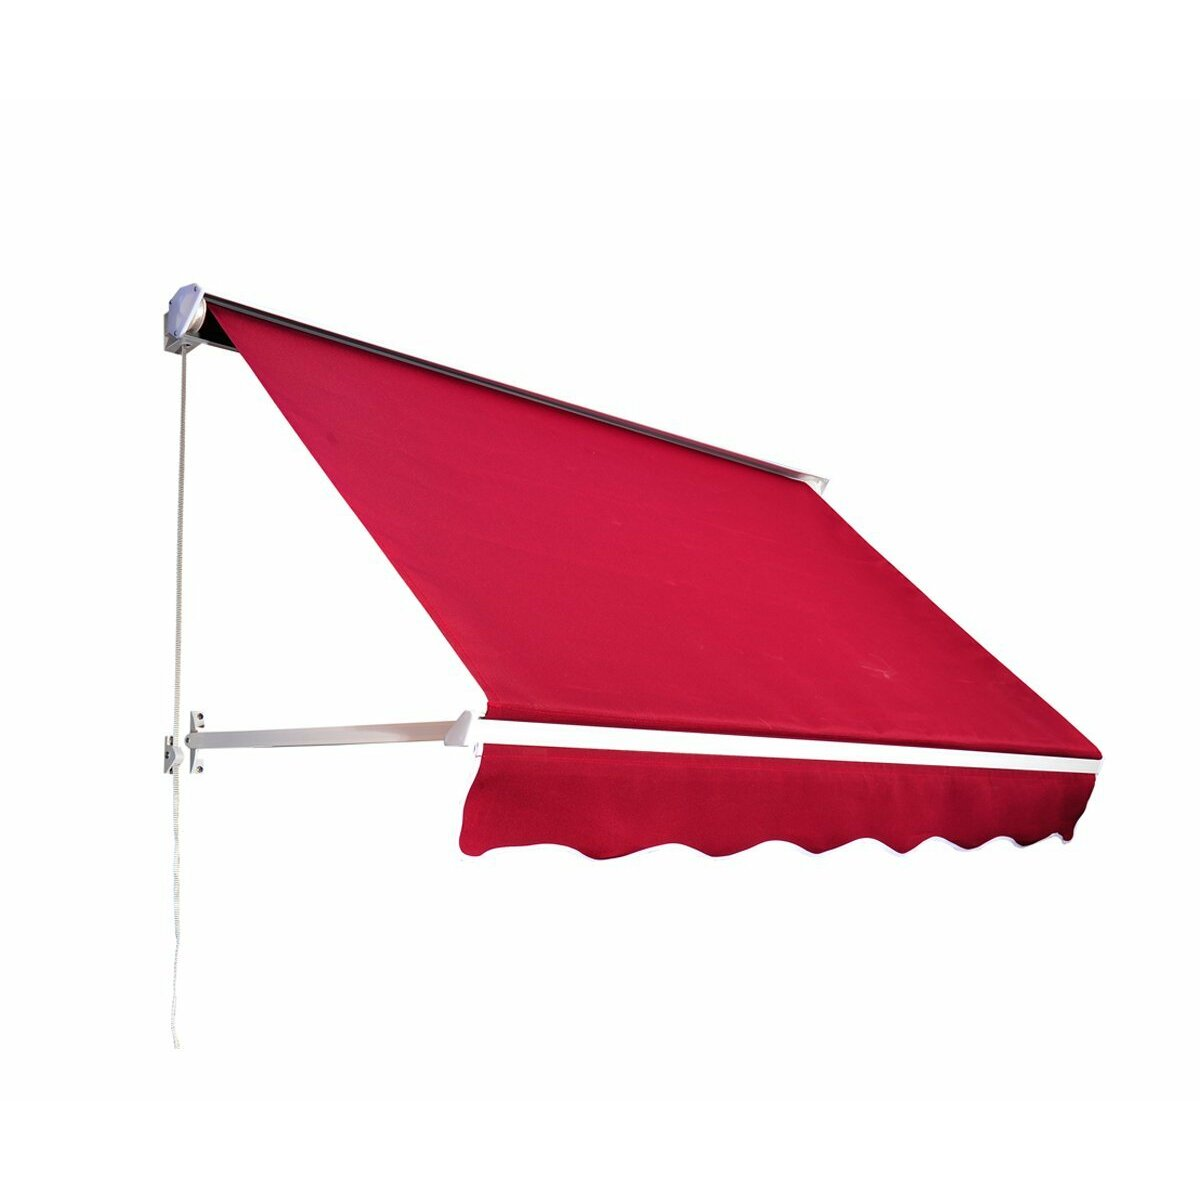 Outsunny Outsunny Rectangular 5 91ft X 5ft Window Awning